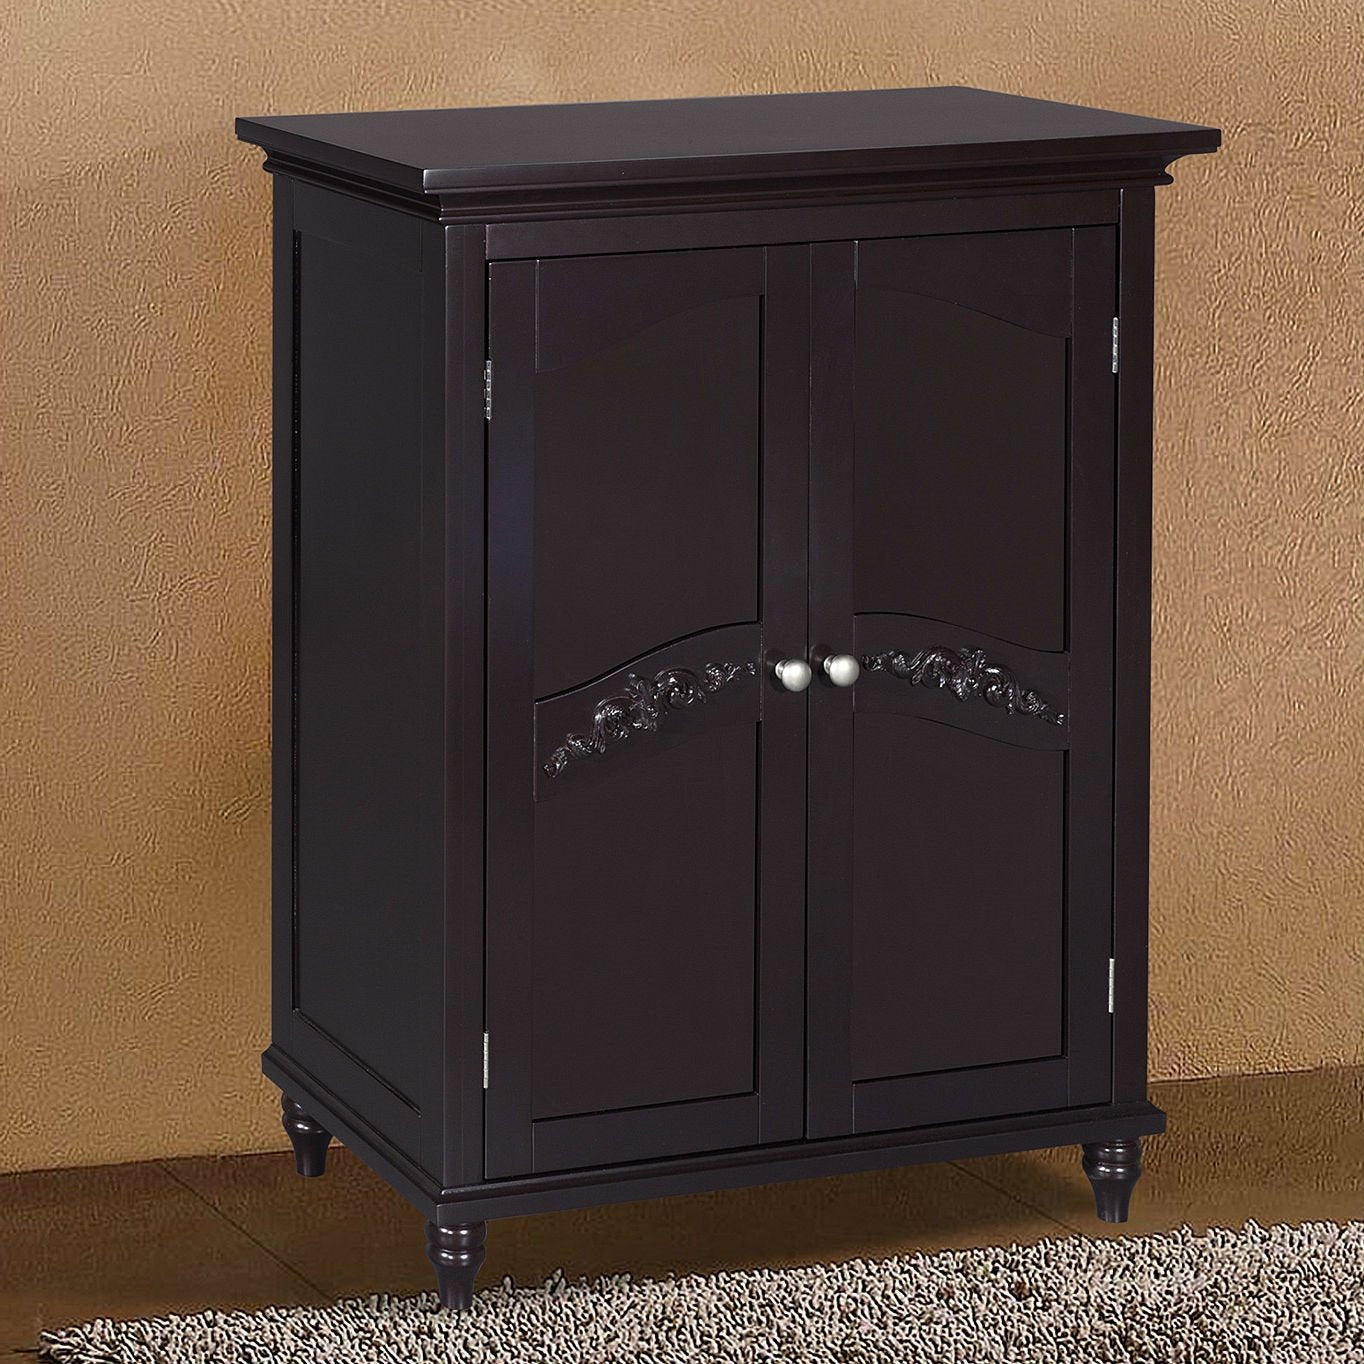 Dark Espresso Wood Bathroom Floor Cabinet with Engraved Doors